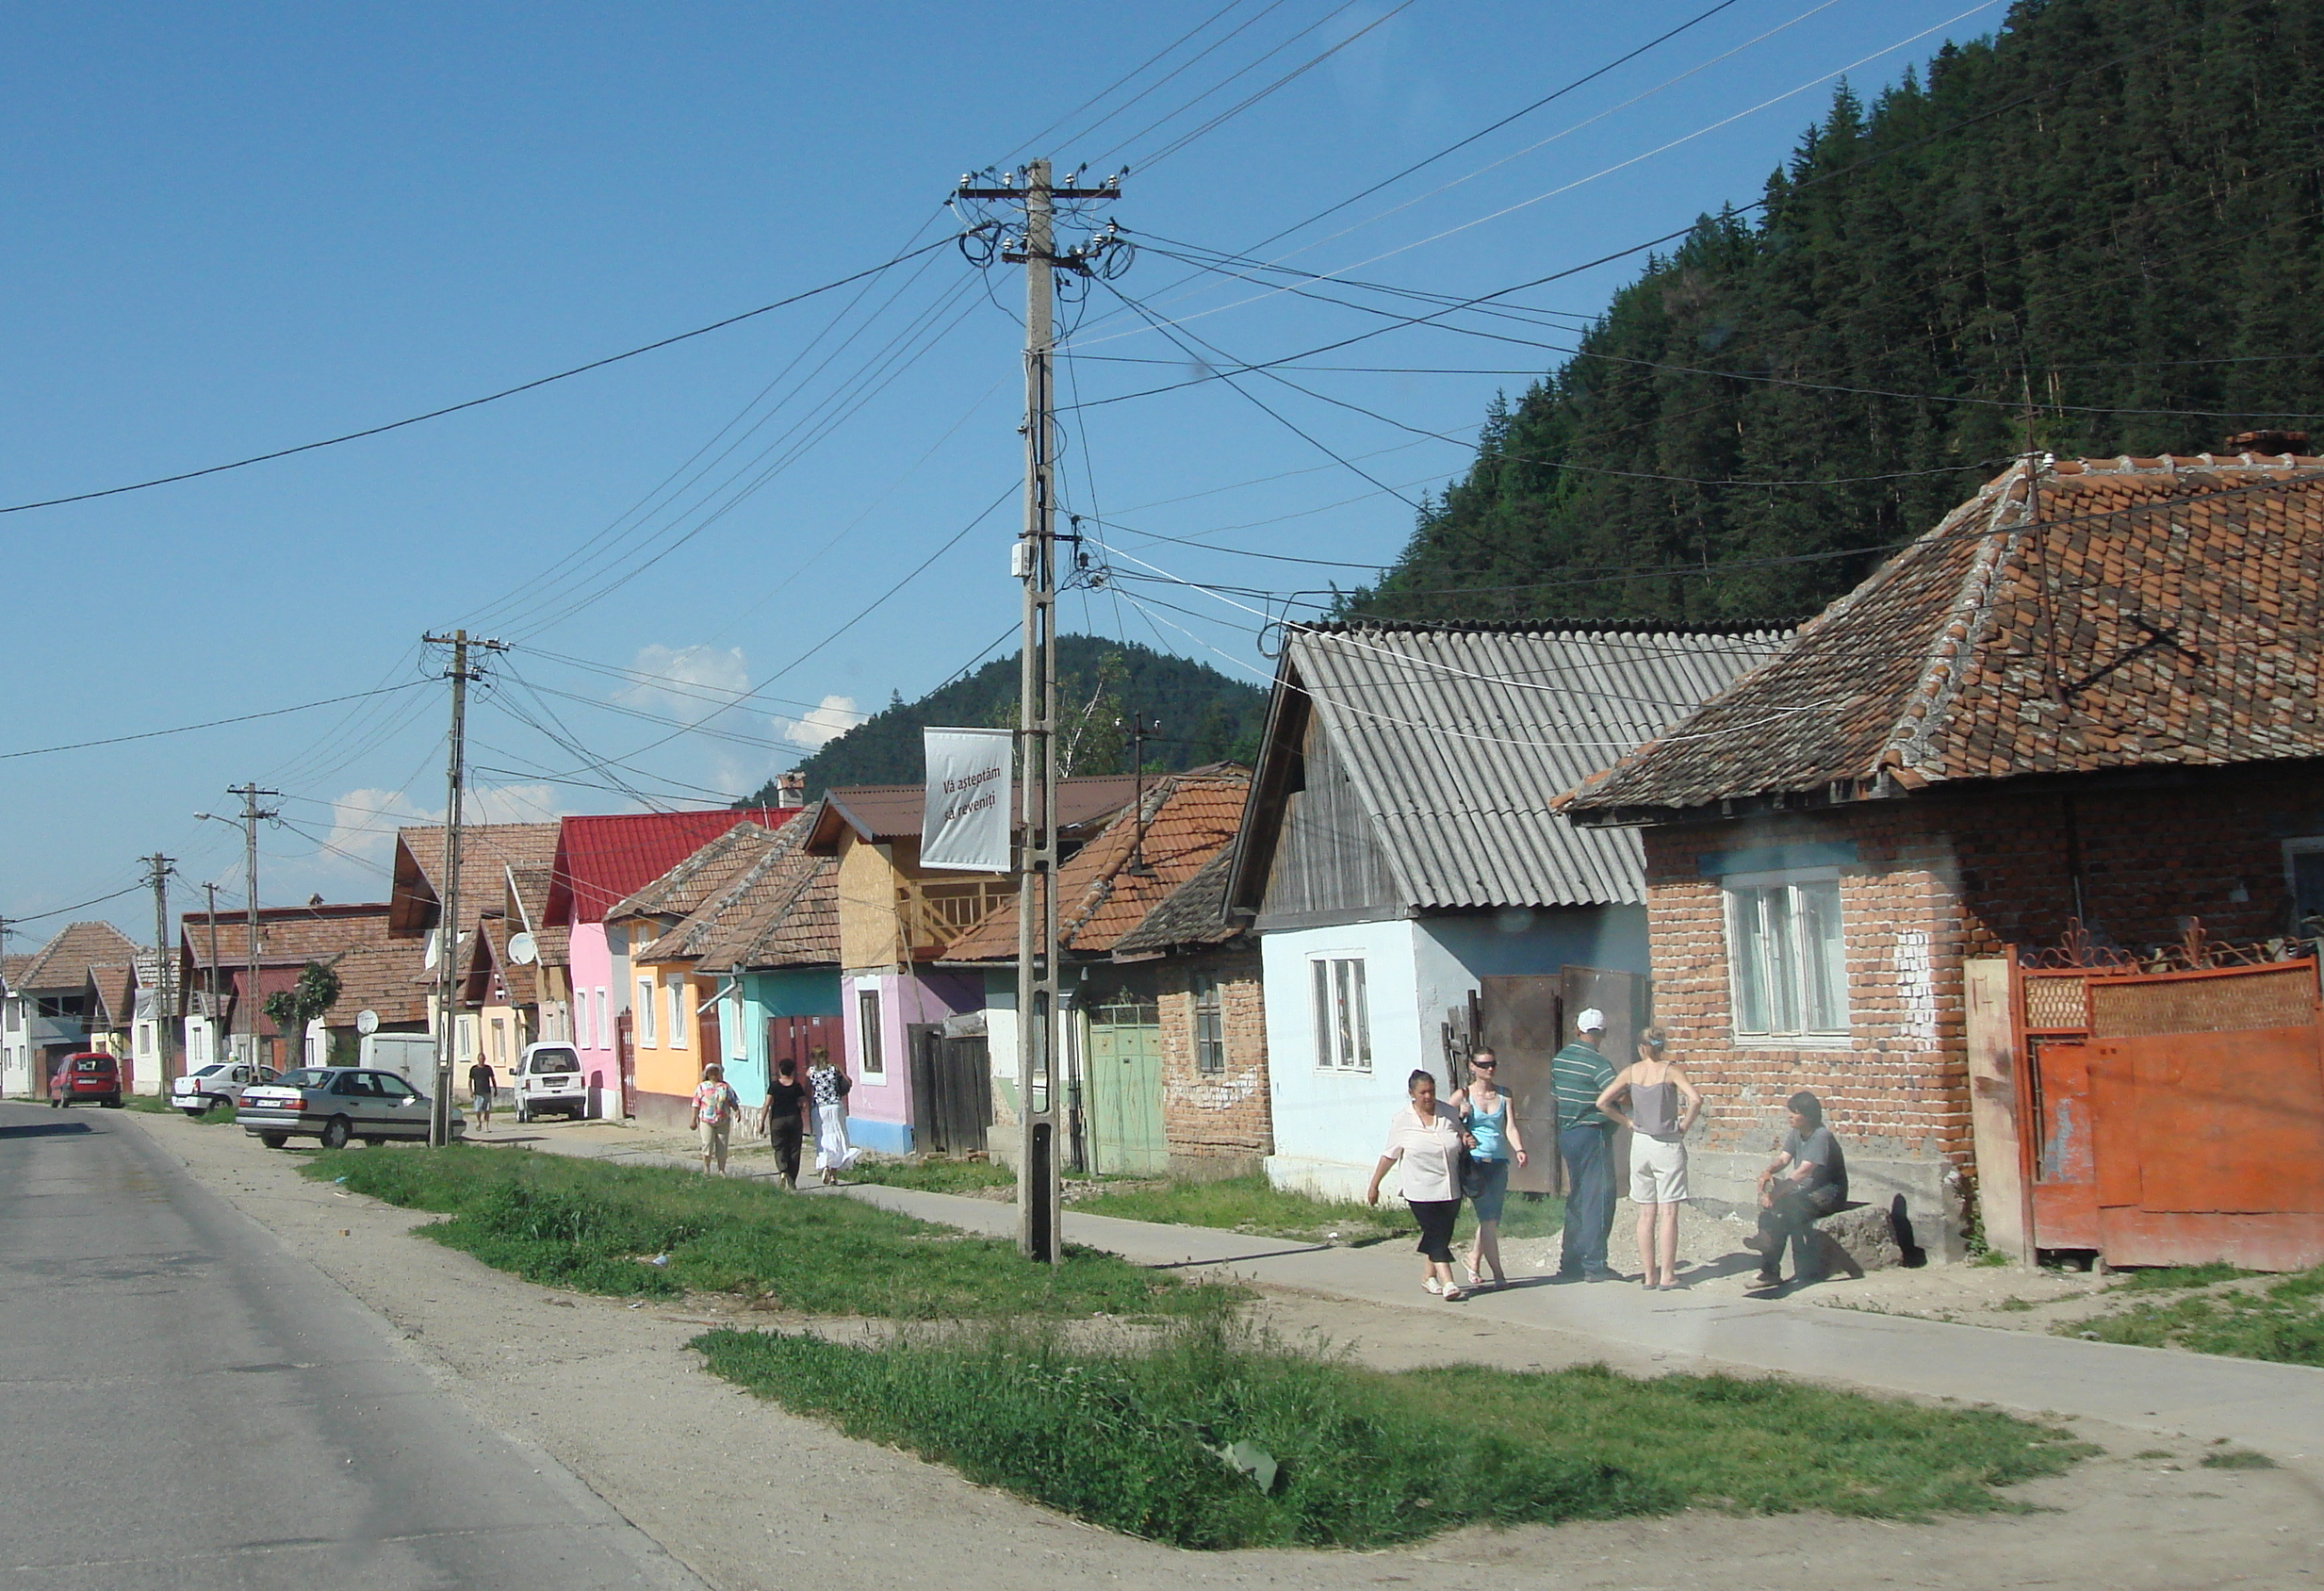 Romania carolyn 39 s travel stories - What houses romanians prefer ...